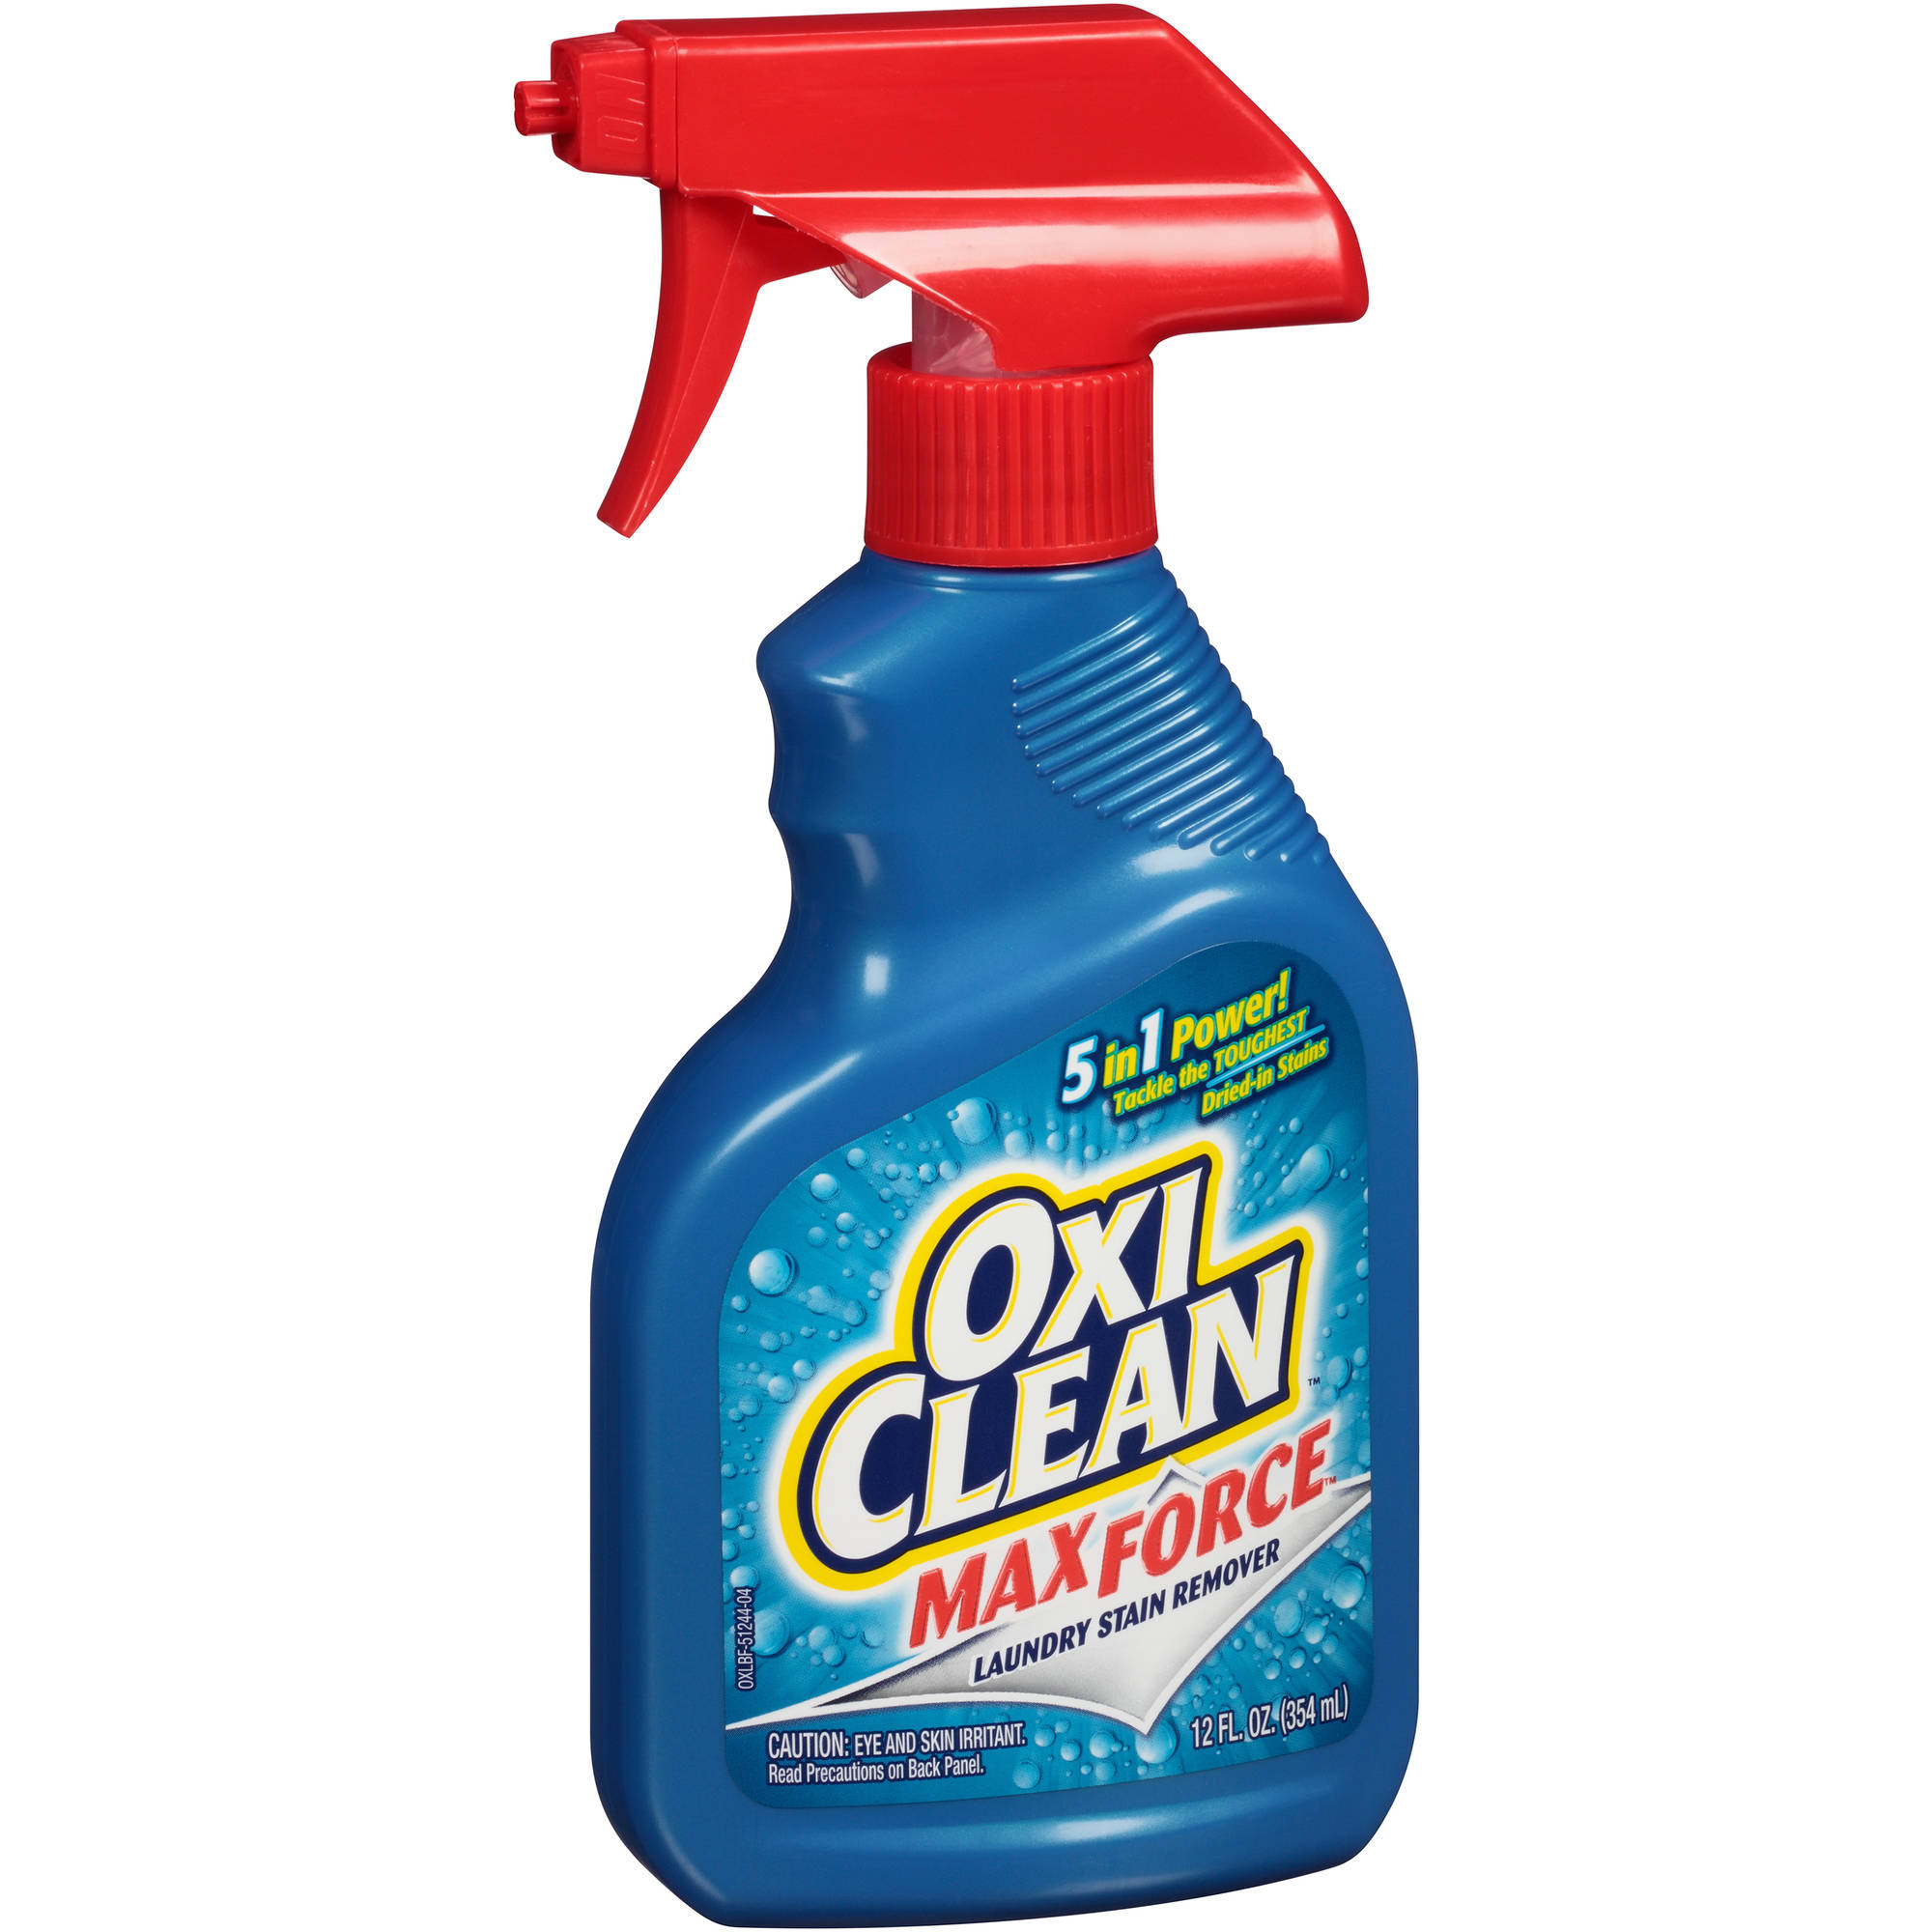 OxiClean Max Force Laundry Stain Remover, 12 oz